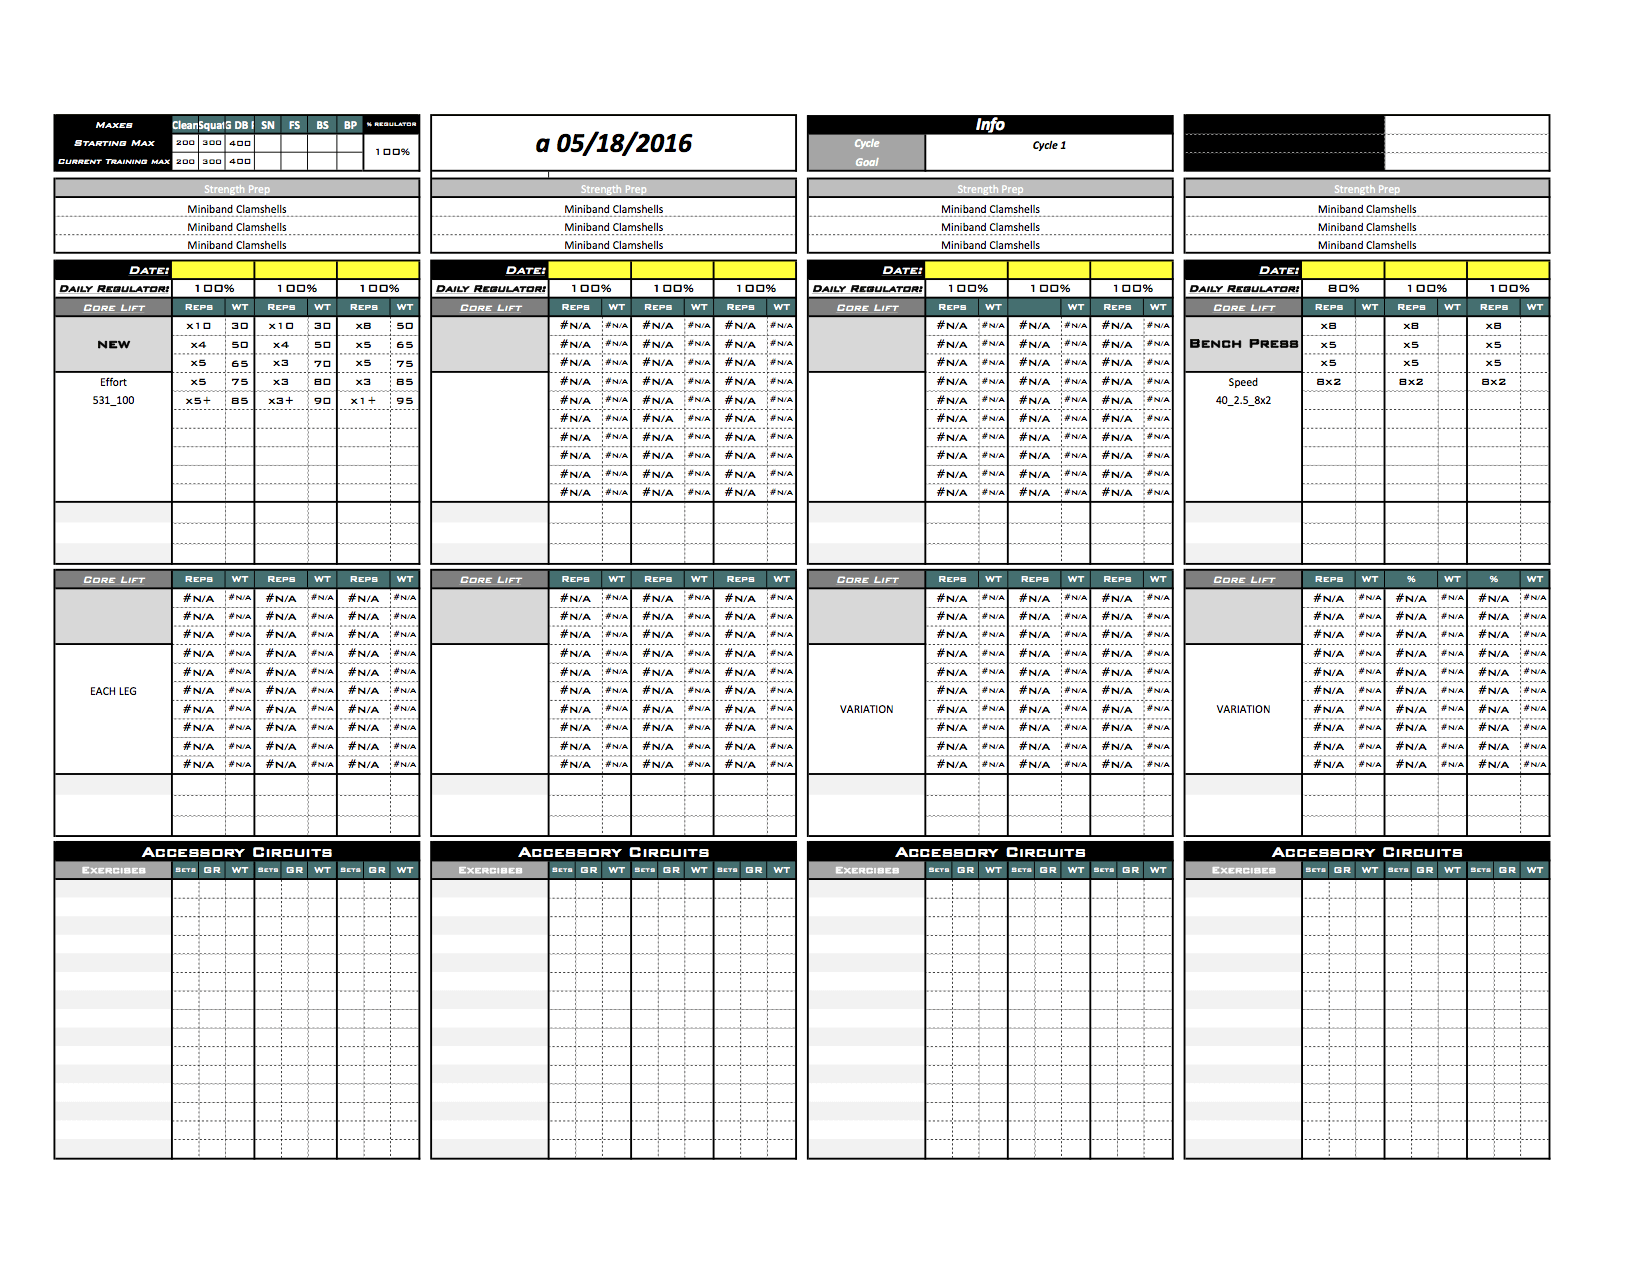 Platinum Strength & Conditioning Excel Template - Excel